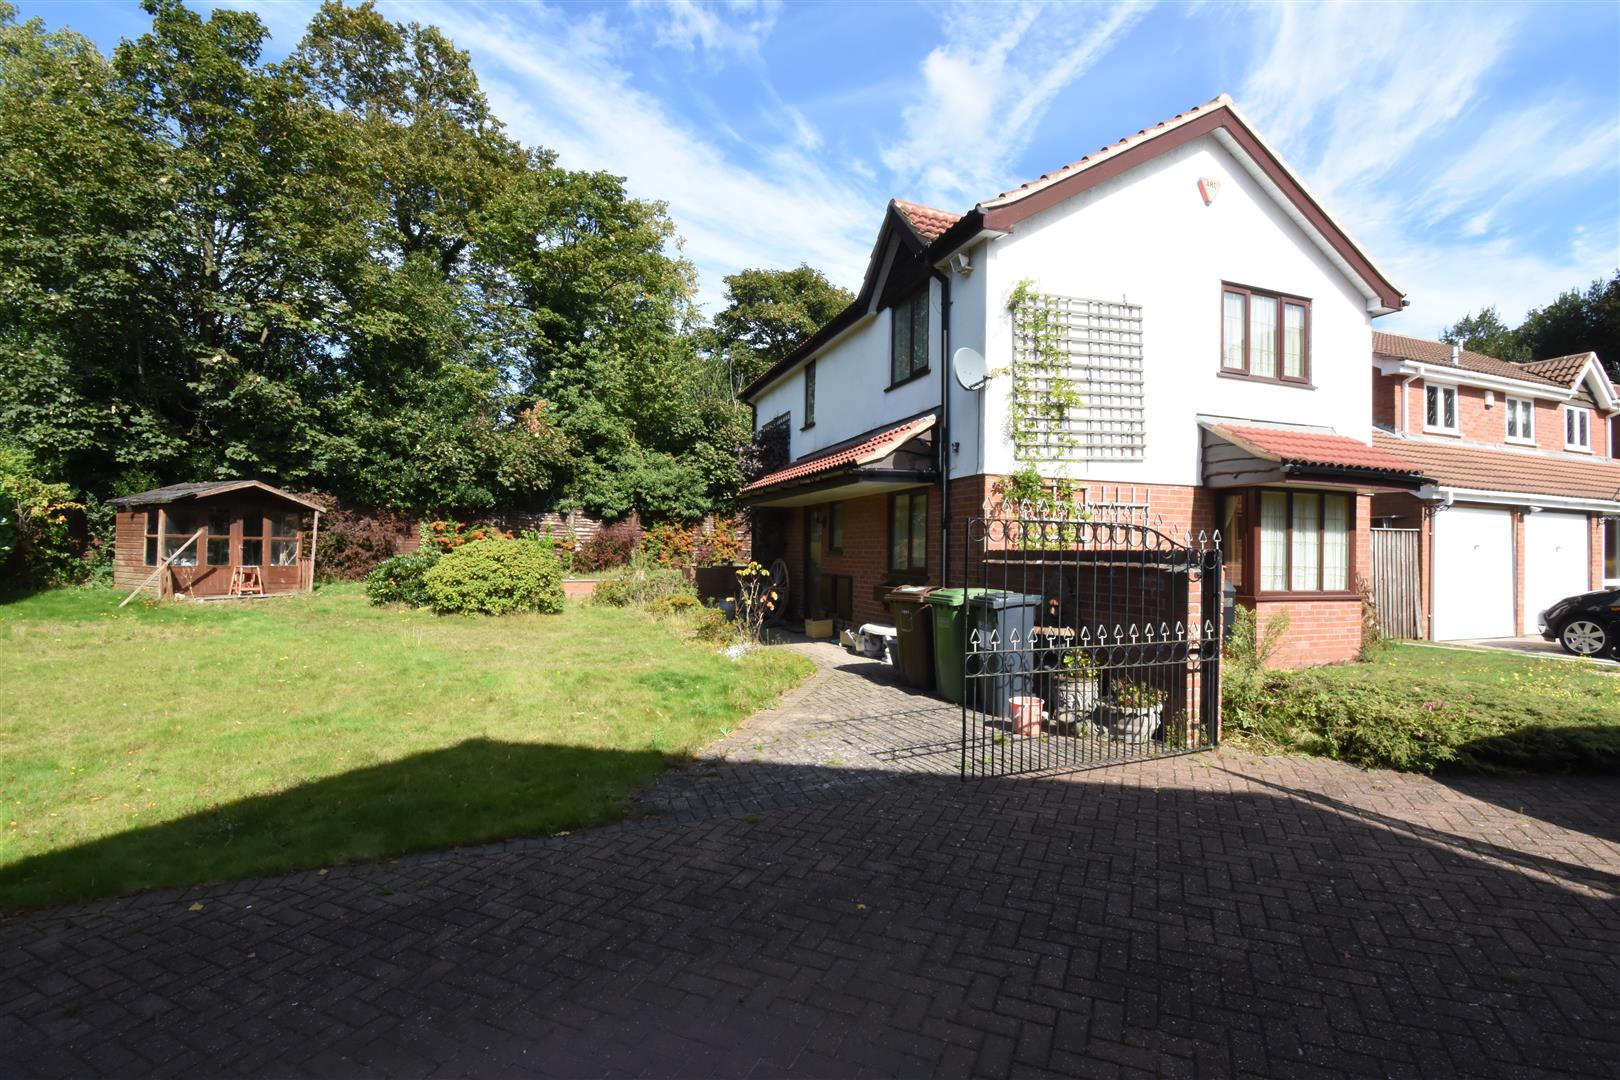 3 bed house for sale in Castle Hills Drive, Castle Bromwich, Birmingham, B36